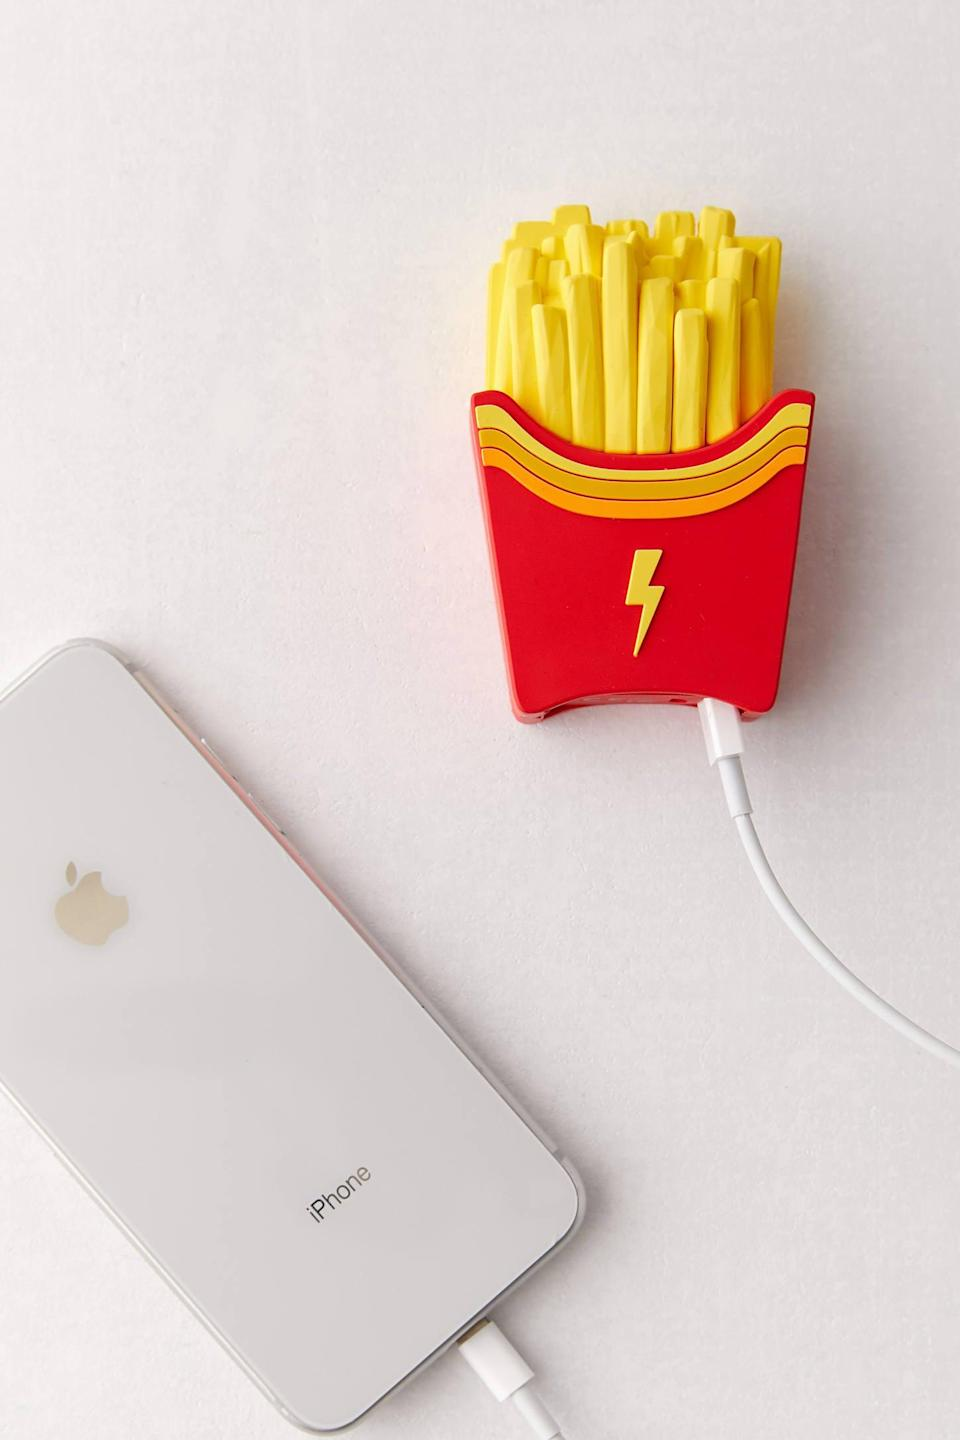 """<p>We all know someone who would love this <a href=""""https://www.popsugar.com/buy/MojiPower-Fries-Portable-Power-Bank-496547?p_name=MojiPower%20Fries%20Portable%20Power%20Bank&retailer=urbanoutfitters.com&pid=496547&price=25&evar1=geek%3Auk&evar9=42737846&evar98=https%3A%2F%2Fwww.popsugartech.com%2Fphoto-gallery%2F42737846%2Fimage%2F46749921%2FMojiPower-Fries-Portable-Power-Bank&list1=gifts%2Choliday%2Cgift%20guide%2Ctech%20gifts%2Cgifts%20for%20men%2Cgifts%20under%20%24100&prop13=api&pdata=1"""" class=""""link rapid-noclick-resp"""" rel=""""nofollow noopener"""" target=""""_blank"""" data-ylk=""""slk:MojiPower Fries Portable Power Bank"""">MojiPower Fries Portable Power Bank</a> ($25).</p>"""